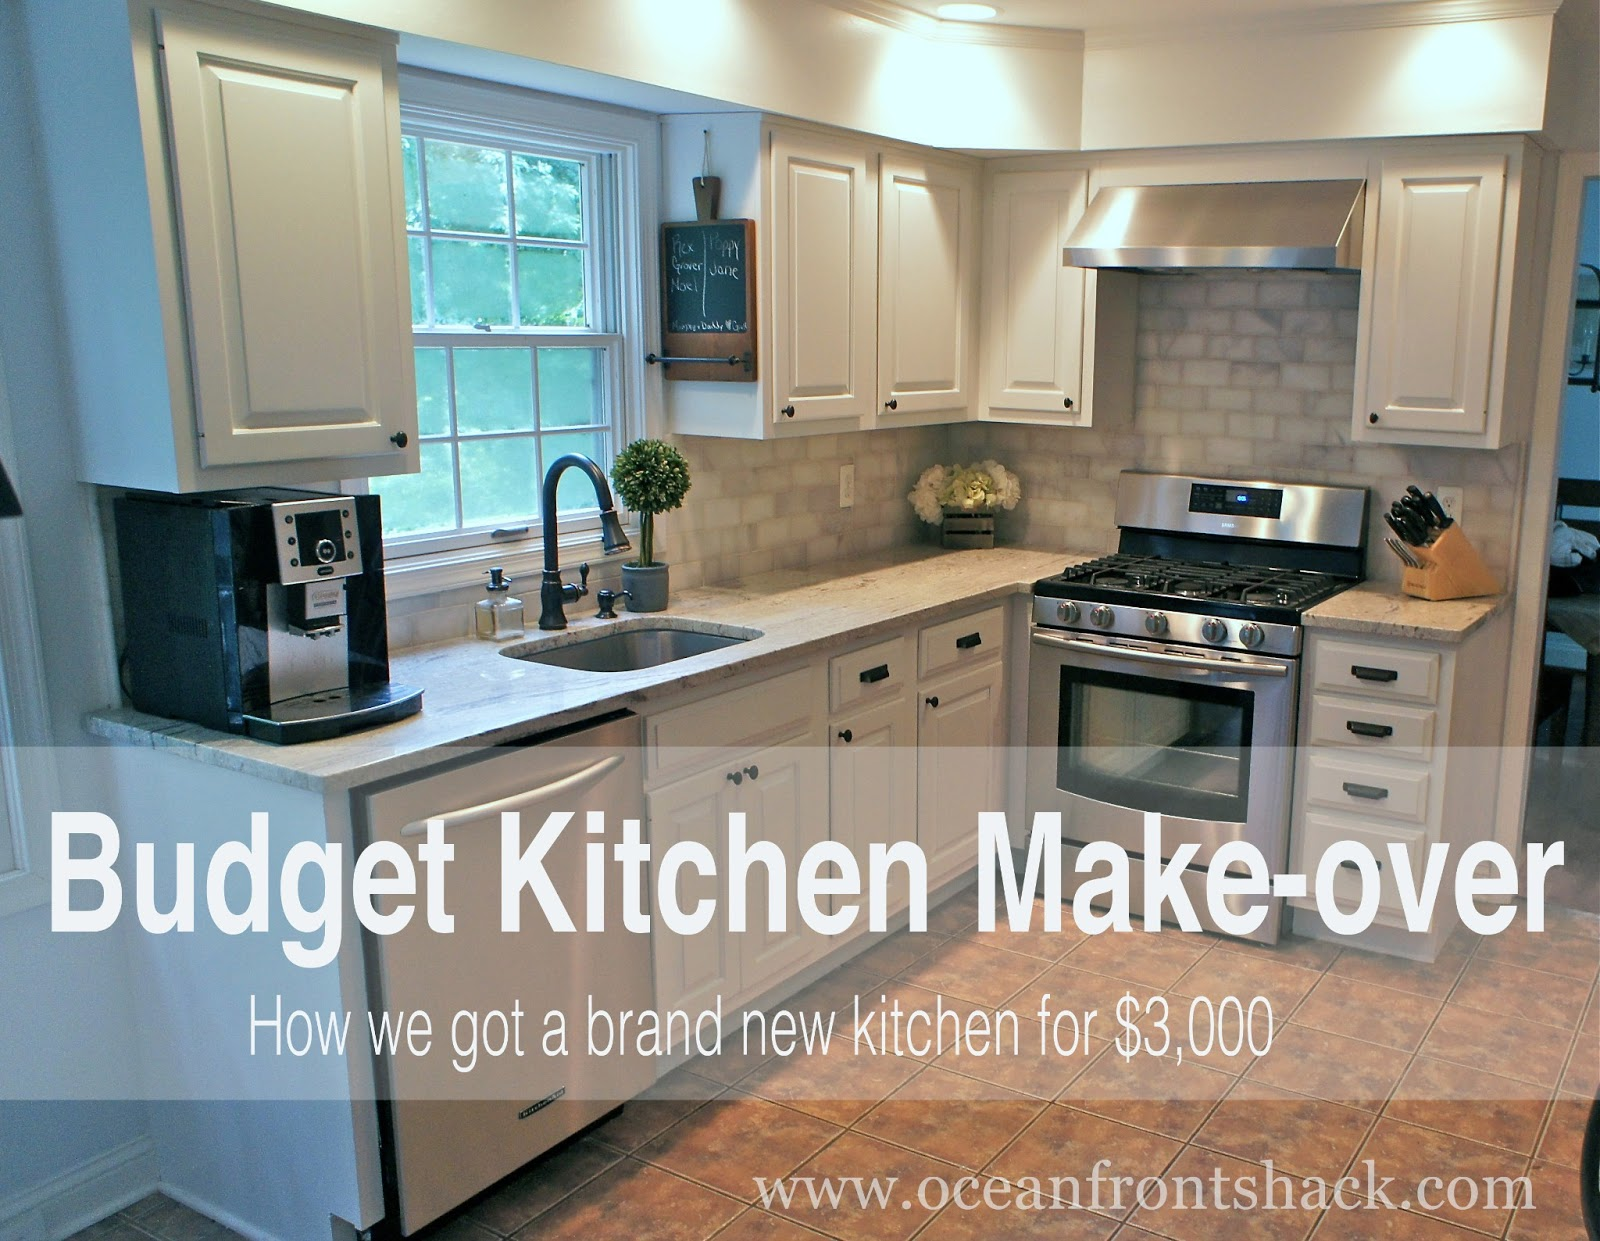 Budget kitchen makeover ocean front shack for Kitchen renovation ideas for your home